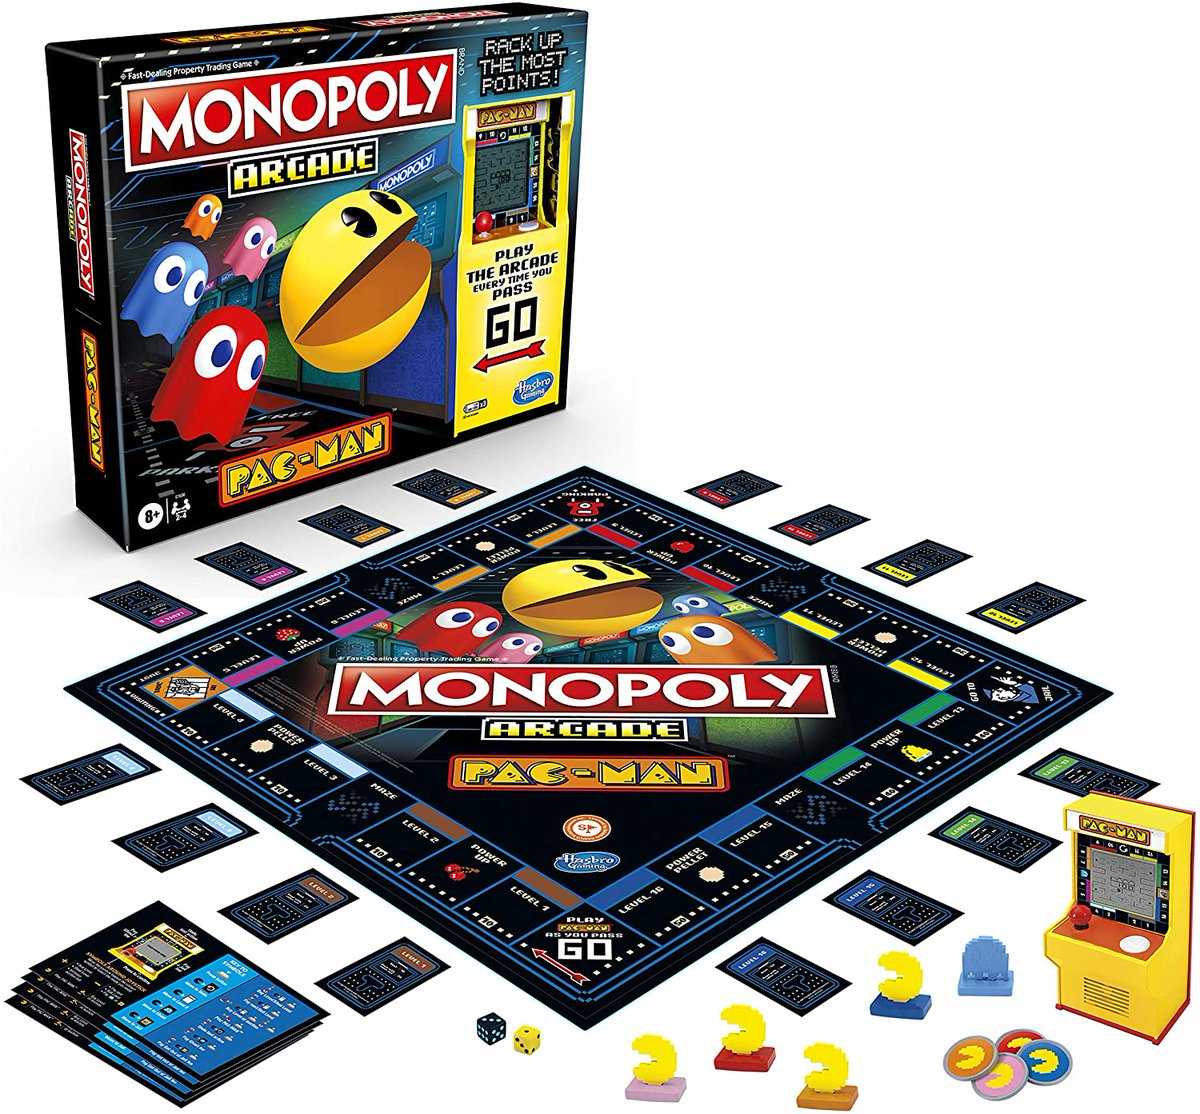 Monopoly Arcade Pac-Man Game Board Game is $15 on Amazon 2